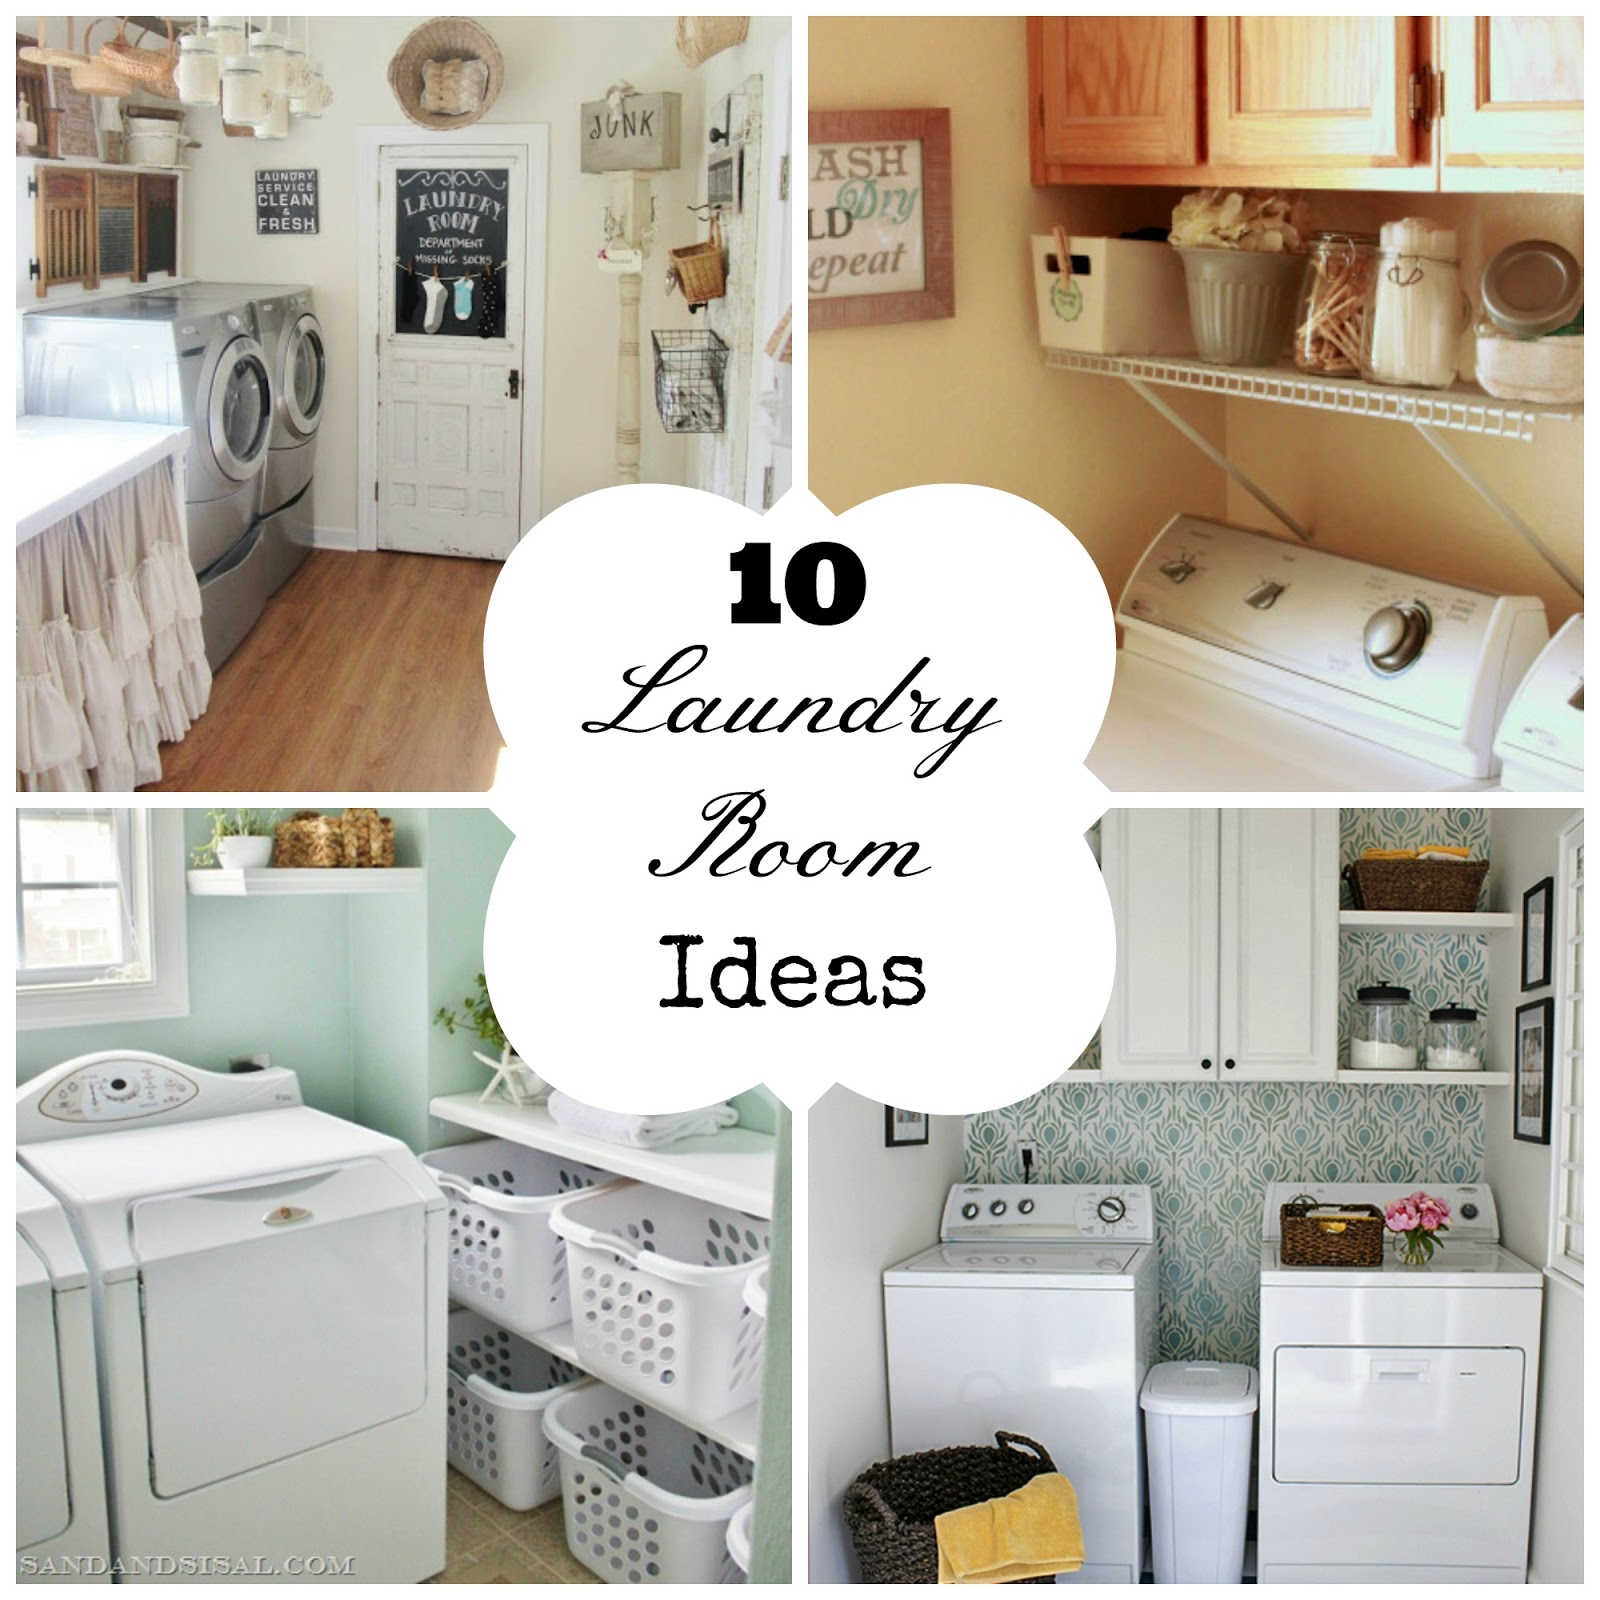 Laundry room ideas modern diy art designs for Utility room ideas